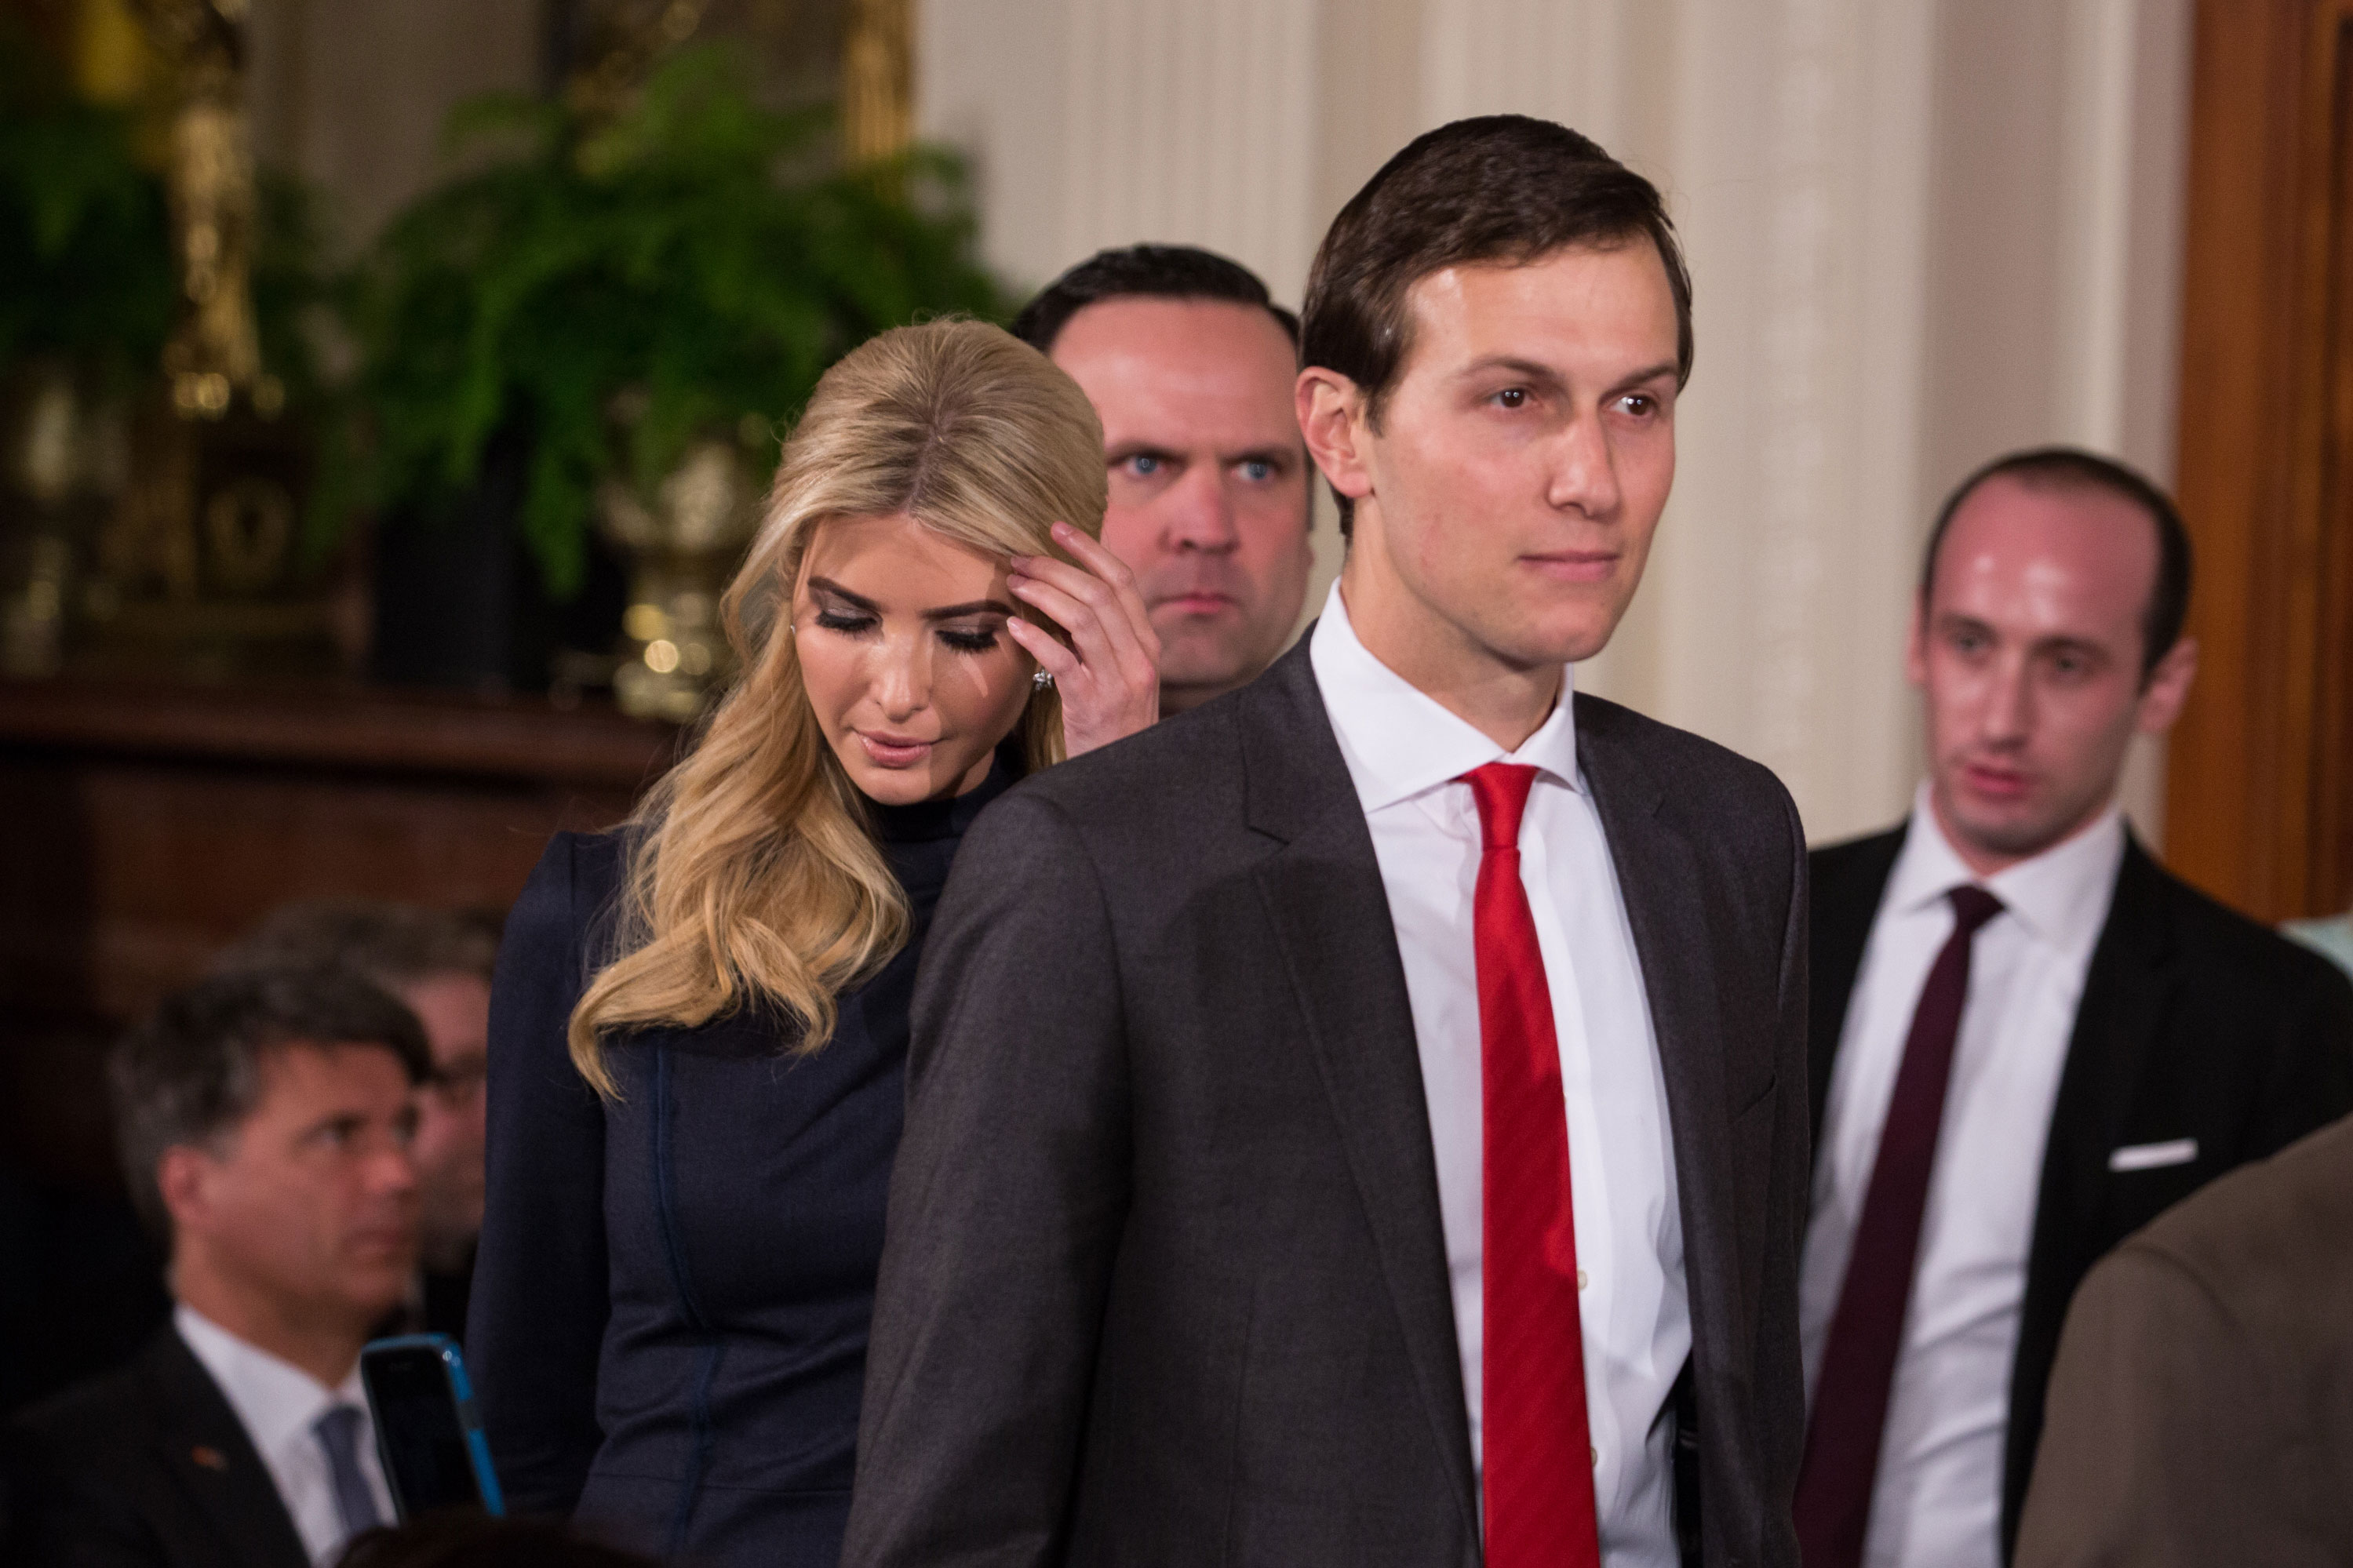 jared-kushner-1490623870.jpg